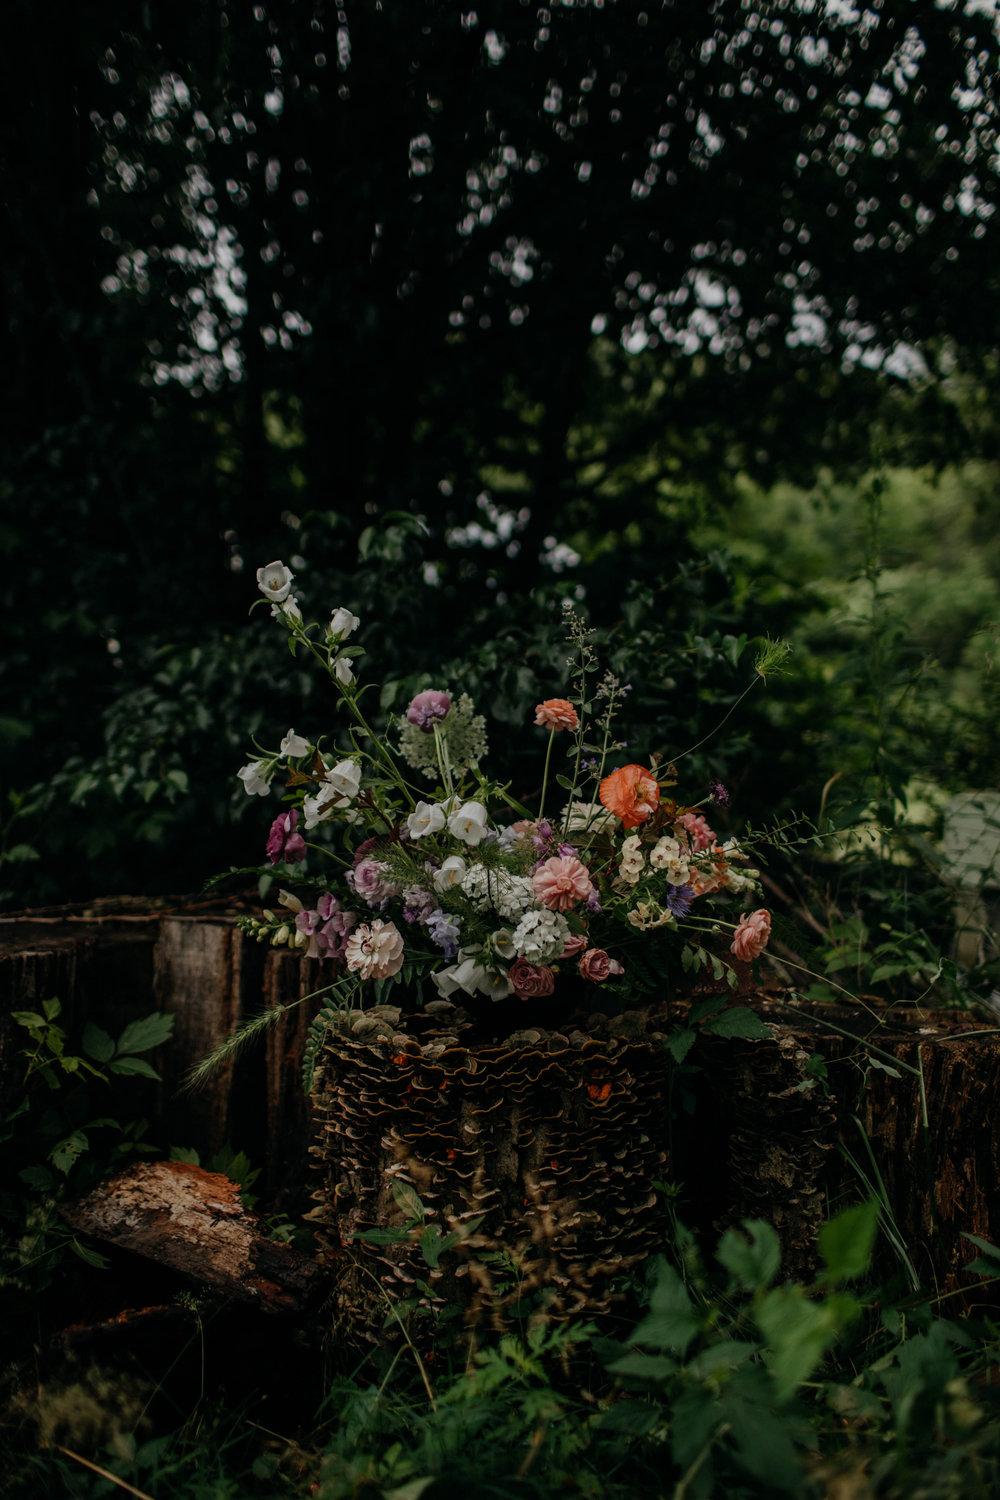 nashville floral workshop nashville tennessee wedding photographer72.jpg